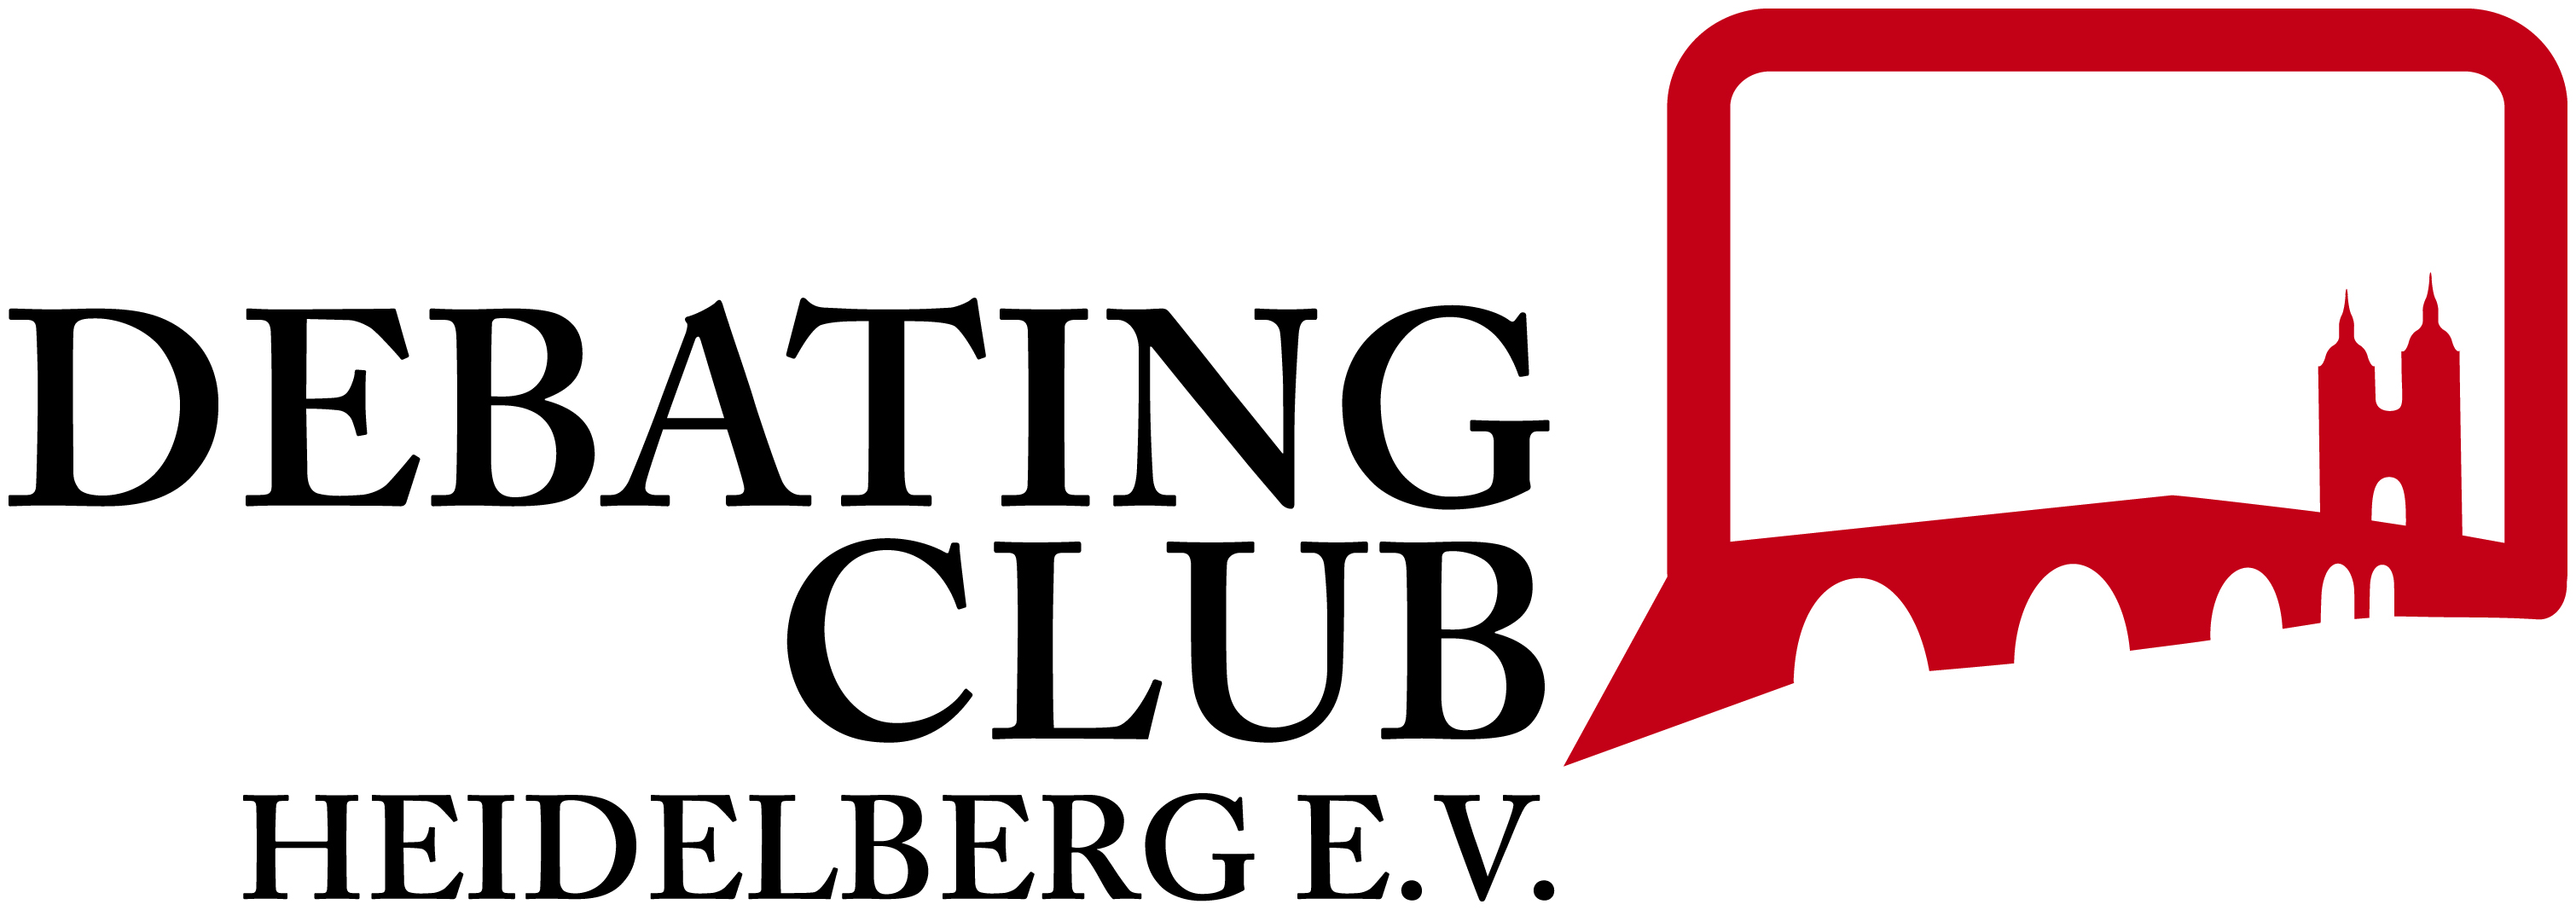 Debating Club Heidelberg e.V.